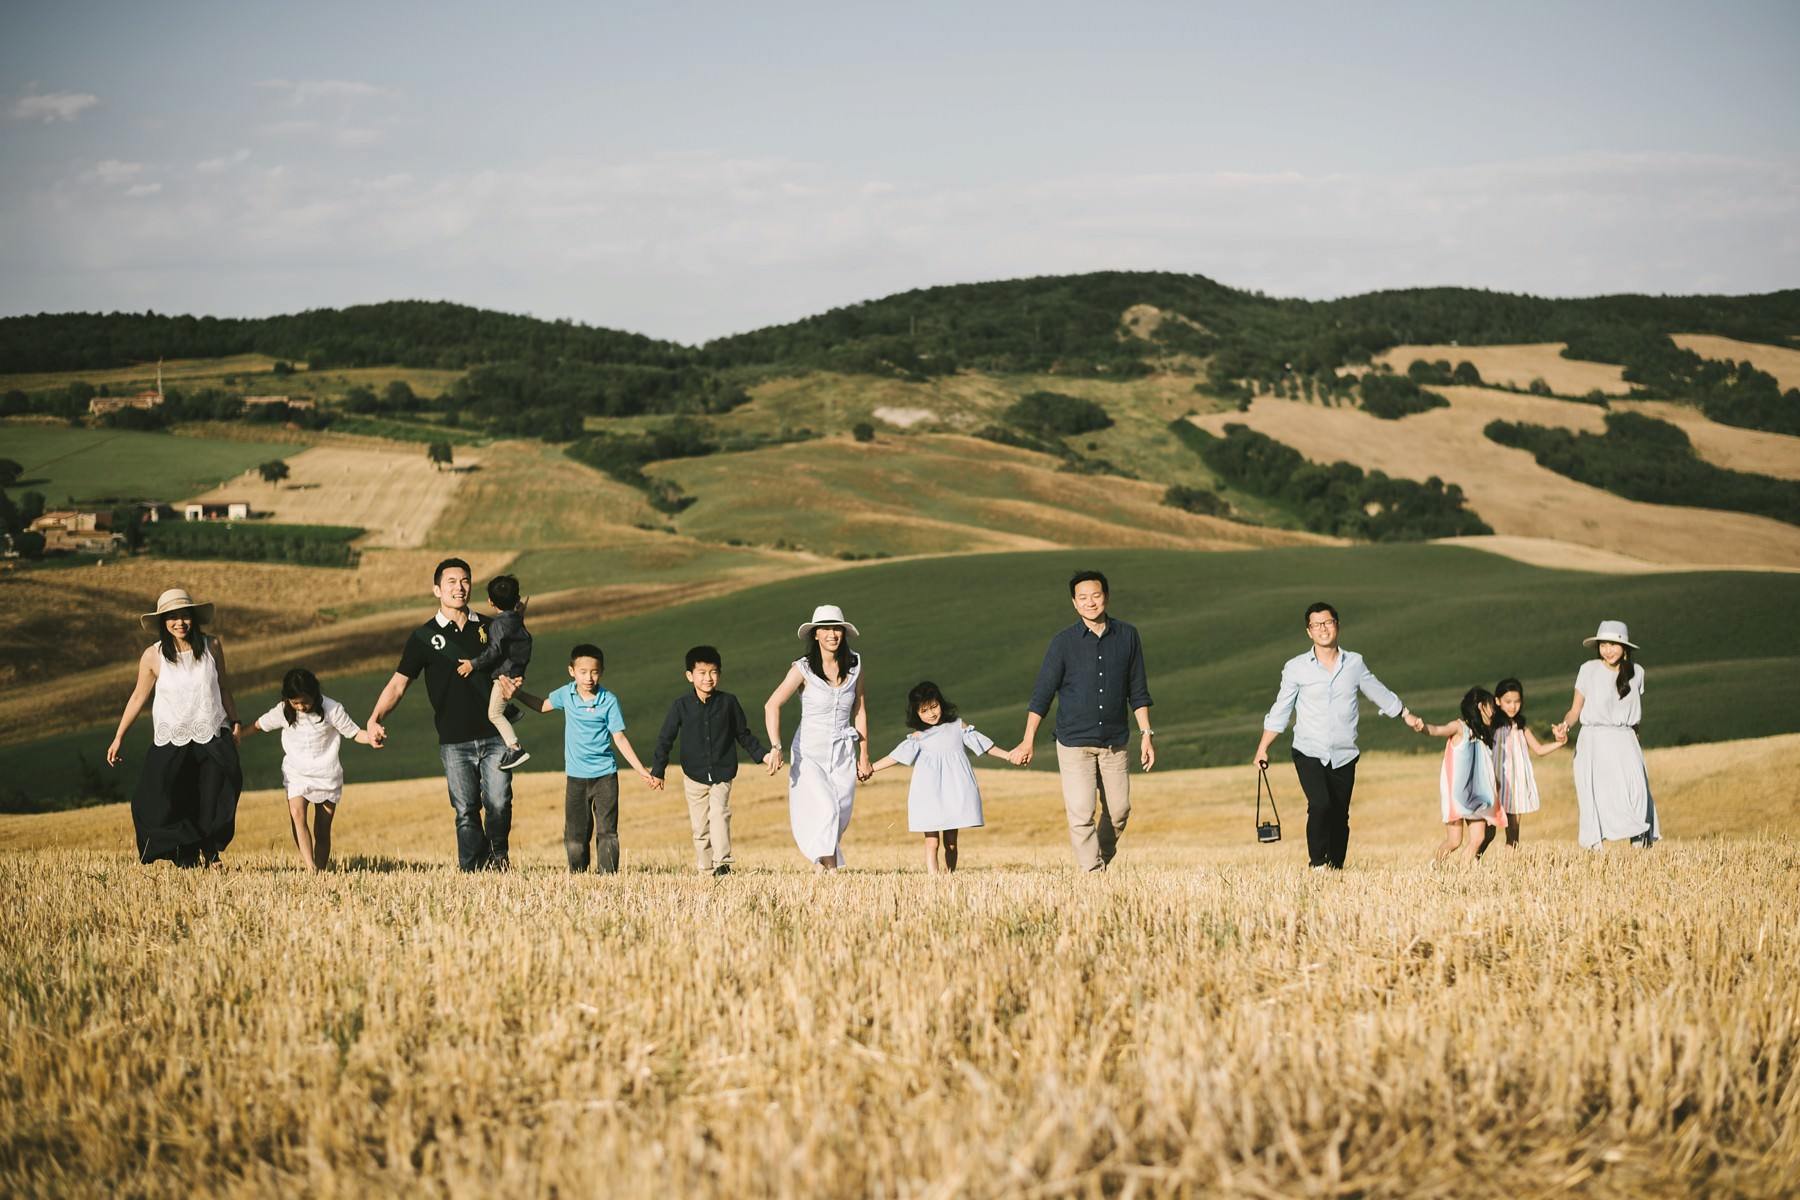 Are you looking for a special gift for your family and you? A family photoshoot is just what you needÉ get inspired by this cute family reunion session in Tuscany!